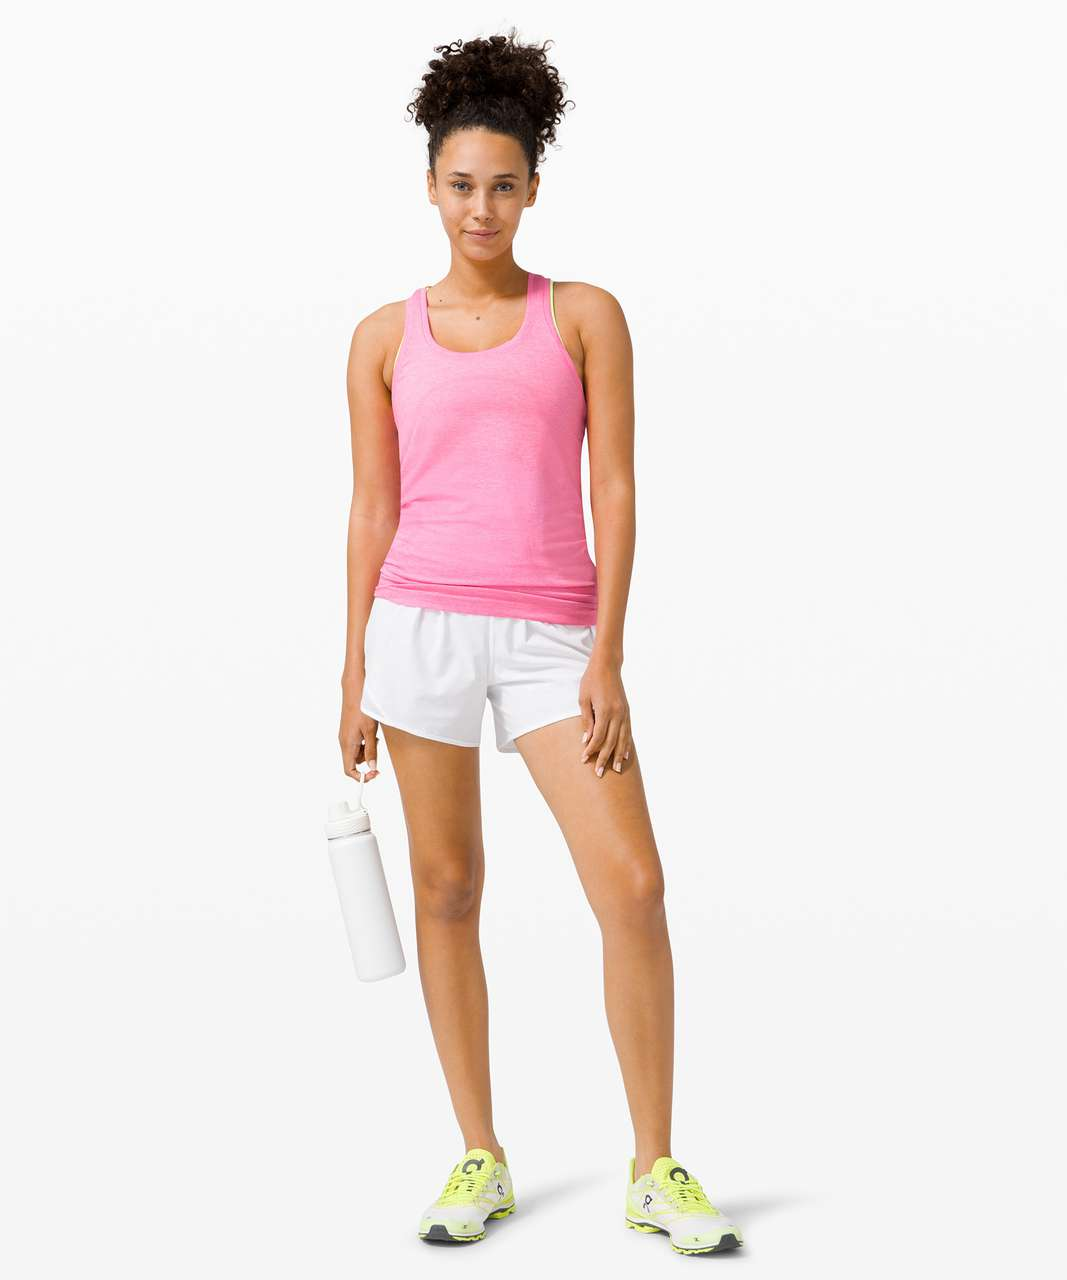 Lululemon Swiftly Tech Racerback 2.0 - Dark Prism Pink / White